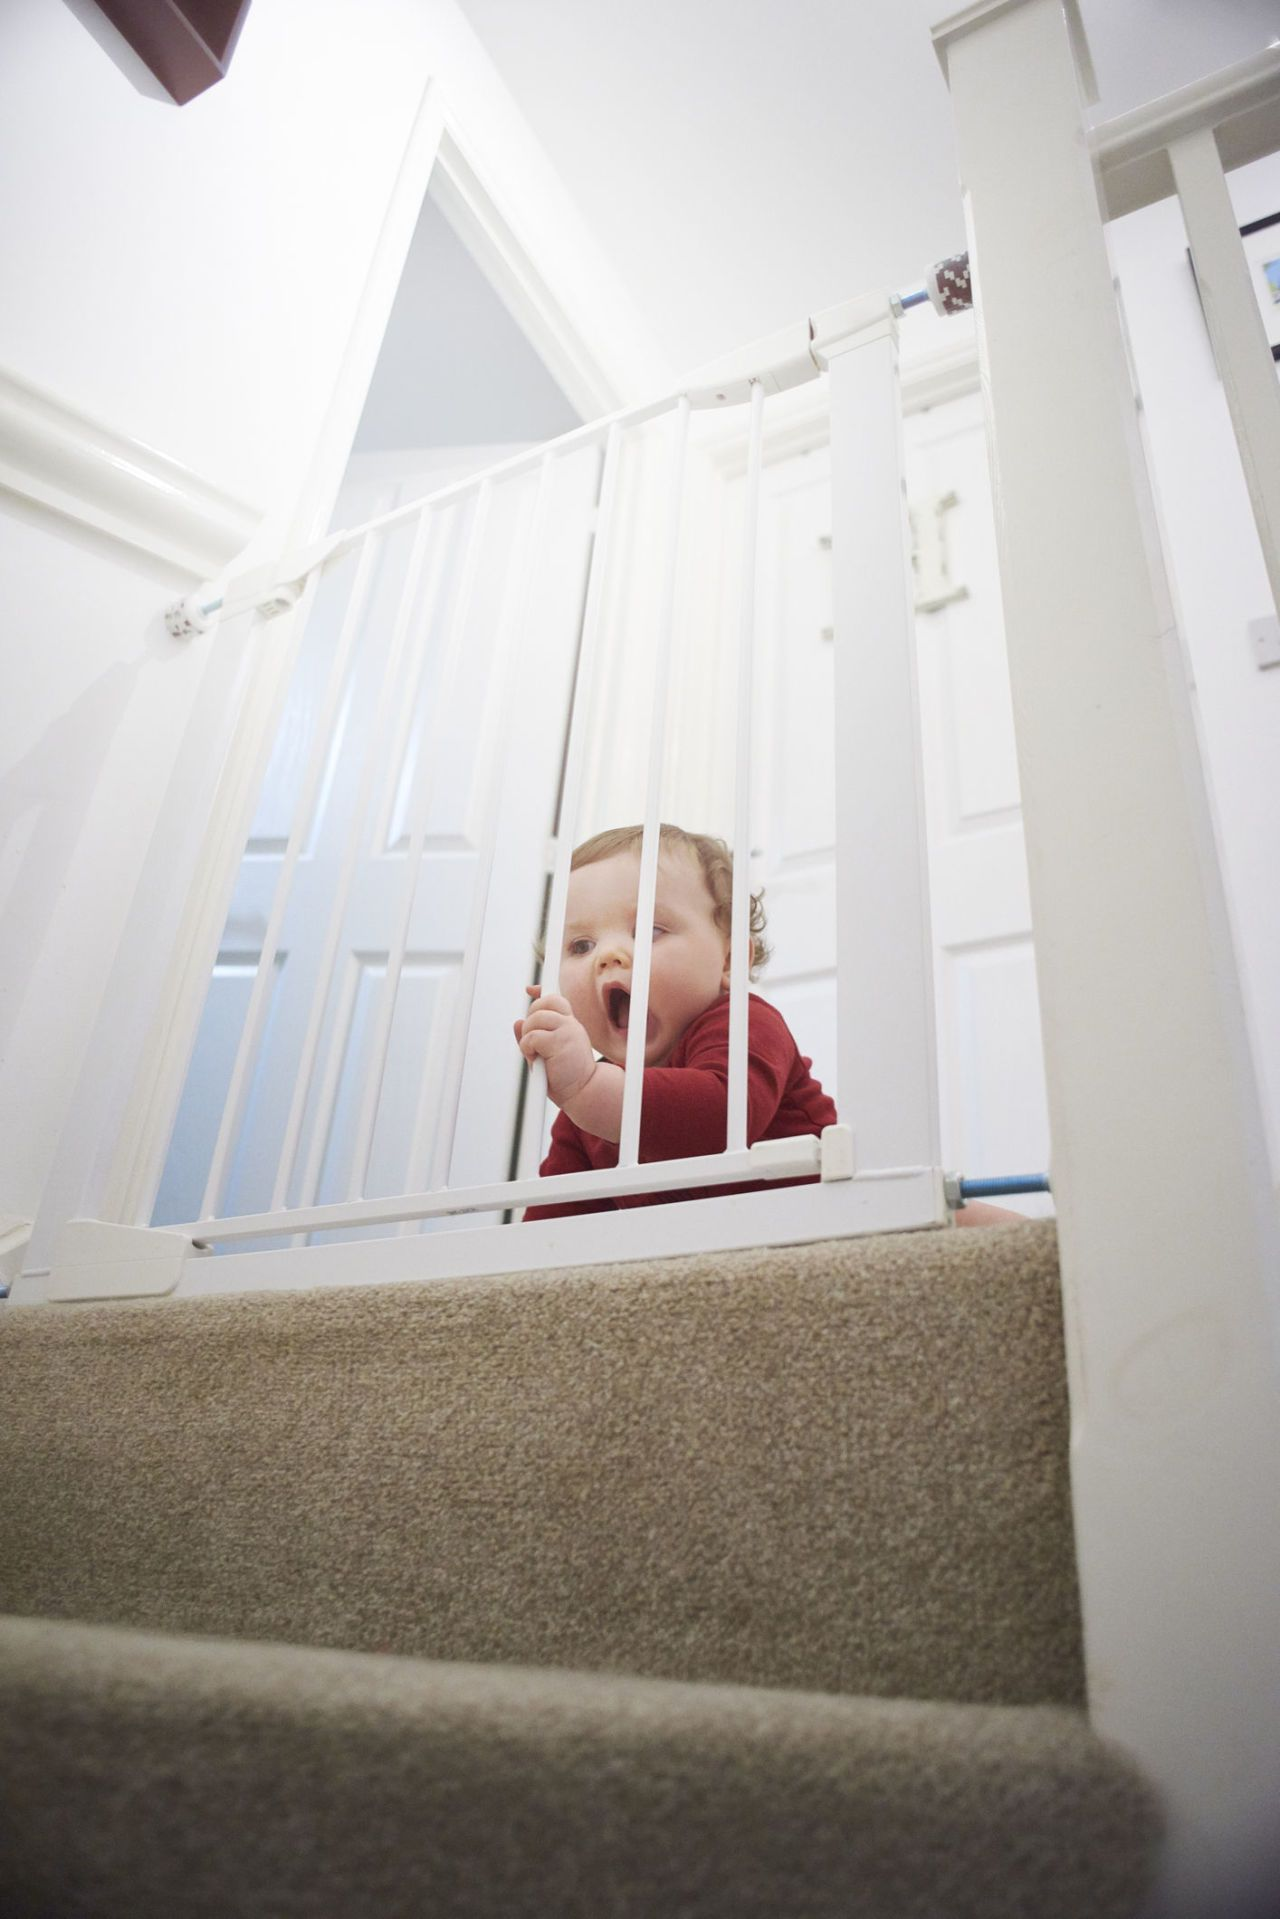 Baby Safety Gate On Stairs: Baby Boy On The Landing Of His Home. He